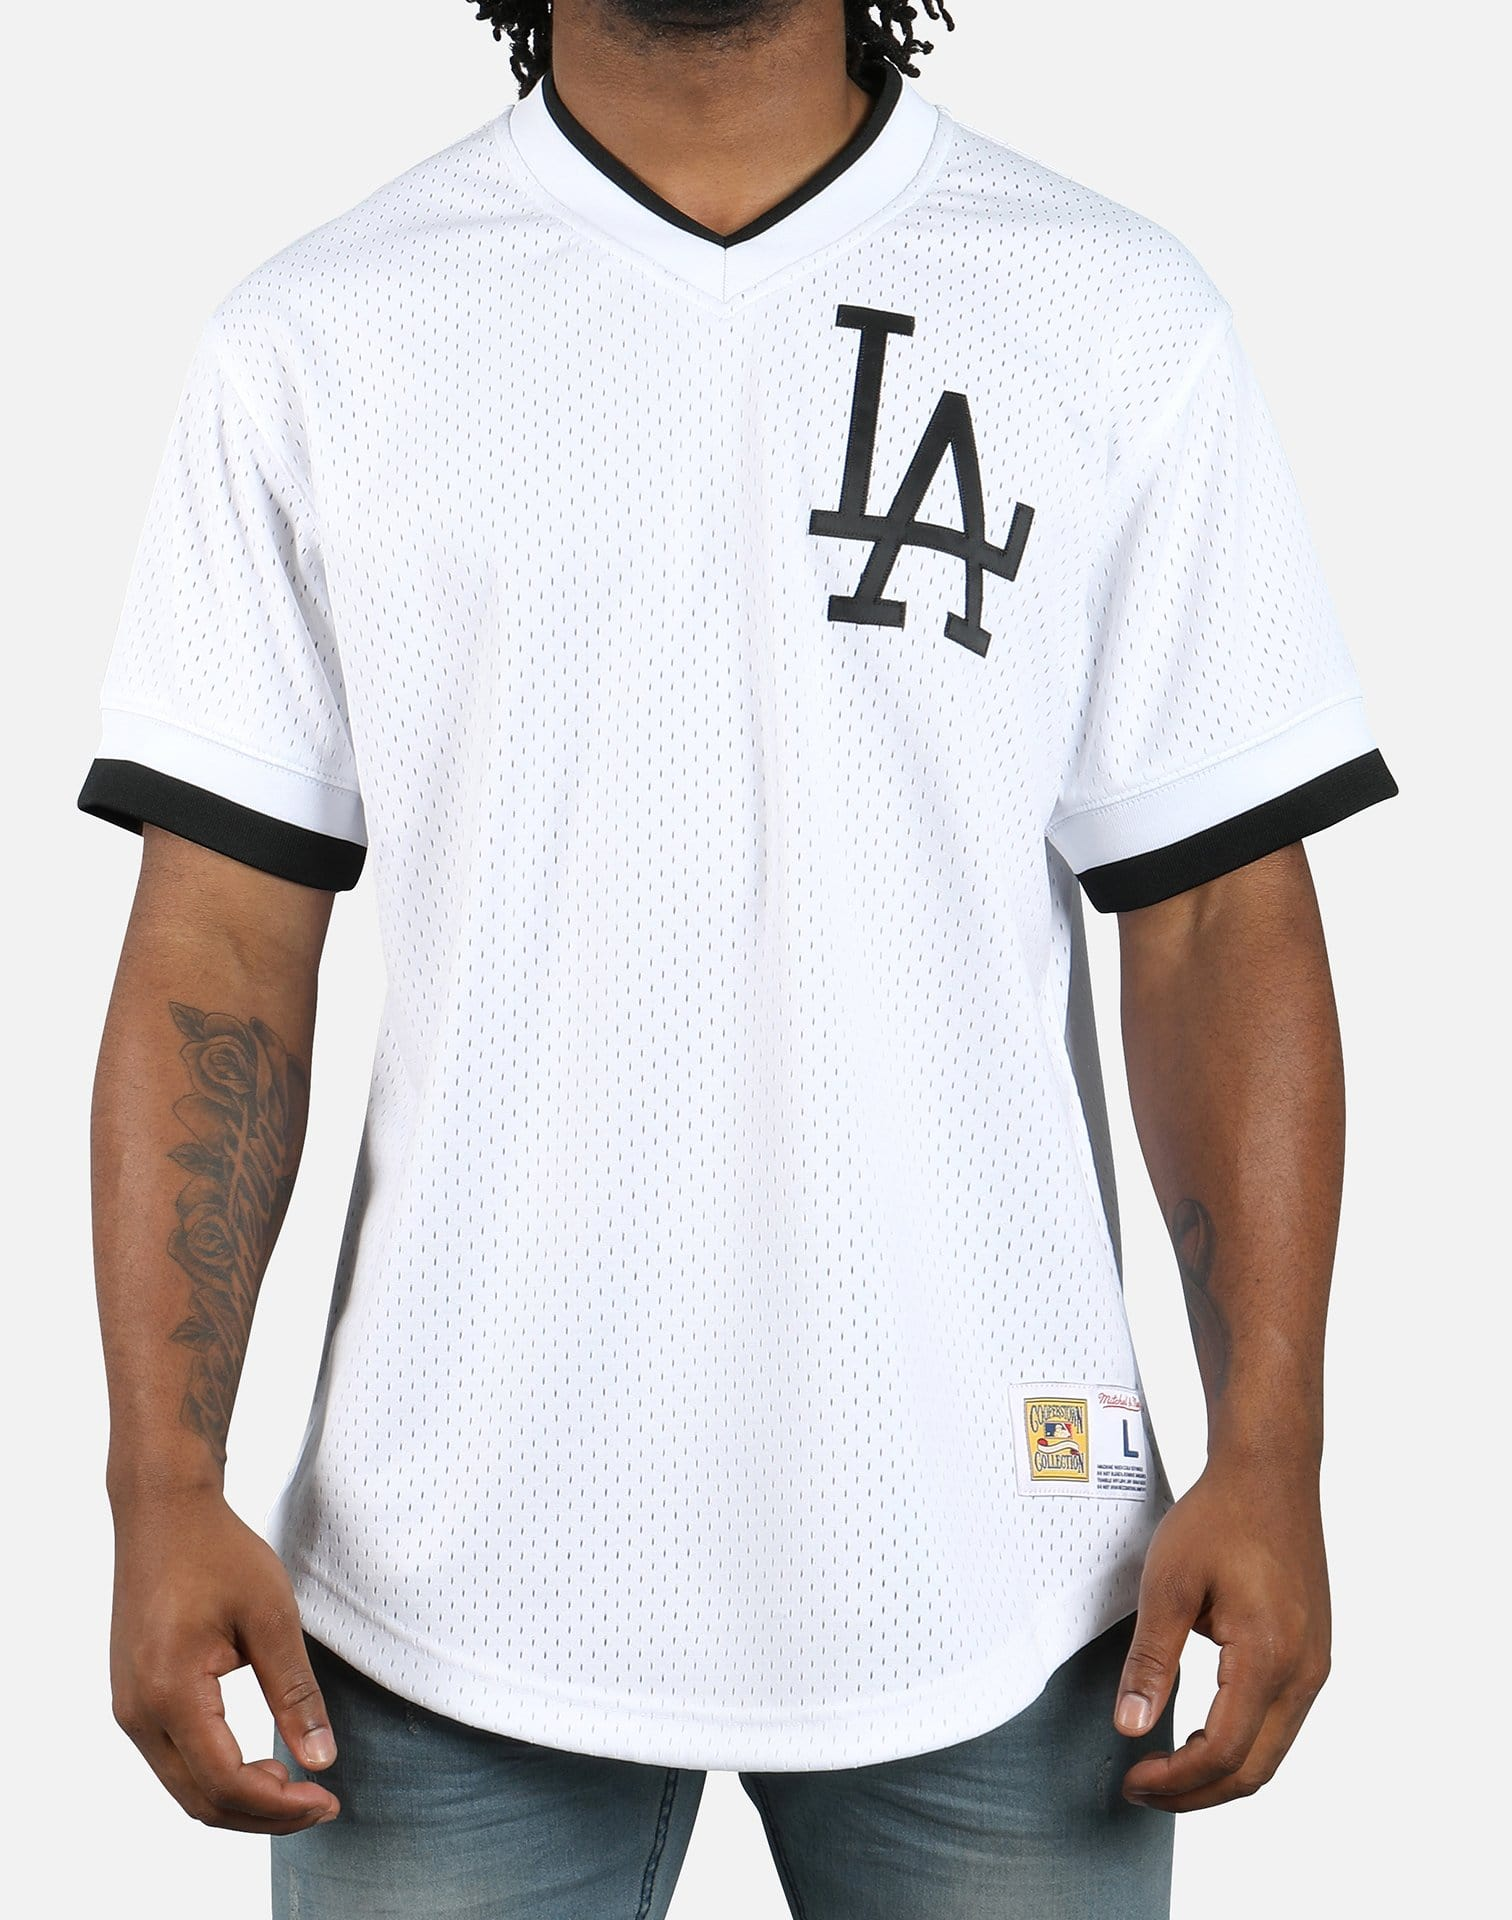 Mitchell & Ness MLB Los Angeles Dodgers Mesh V-Neck Jersey